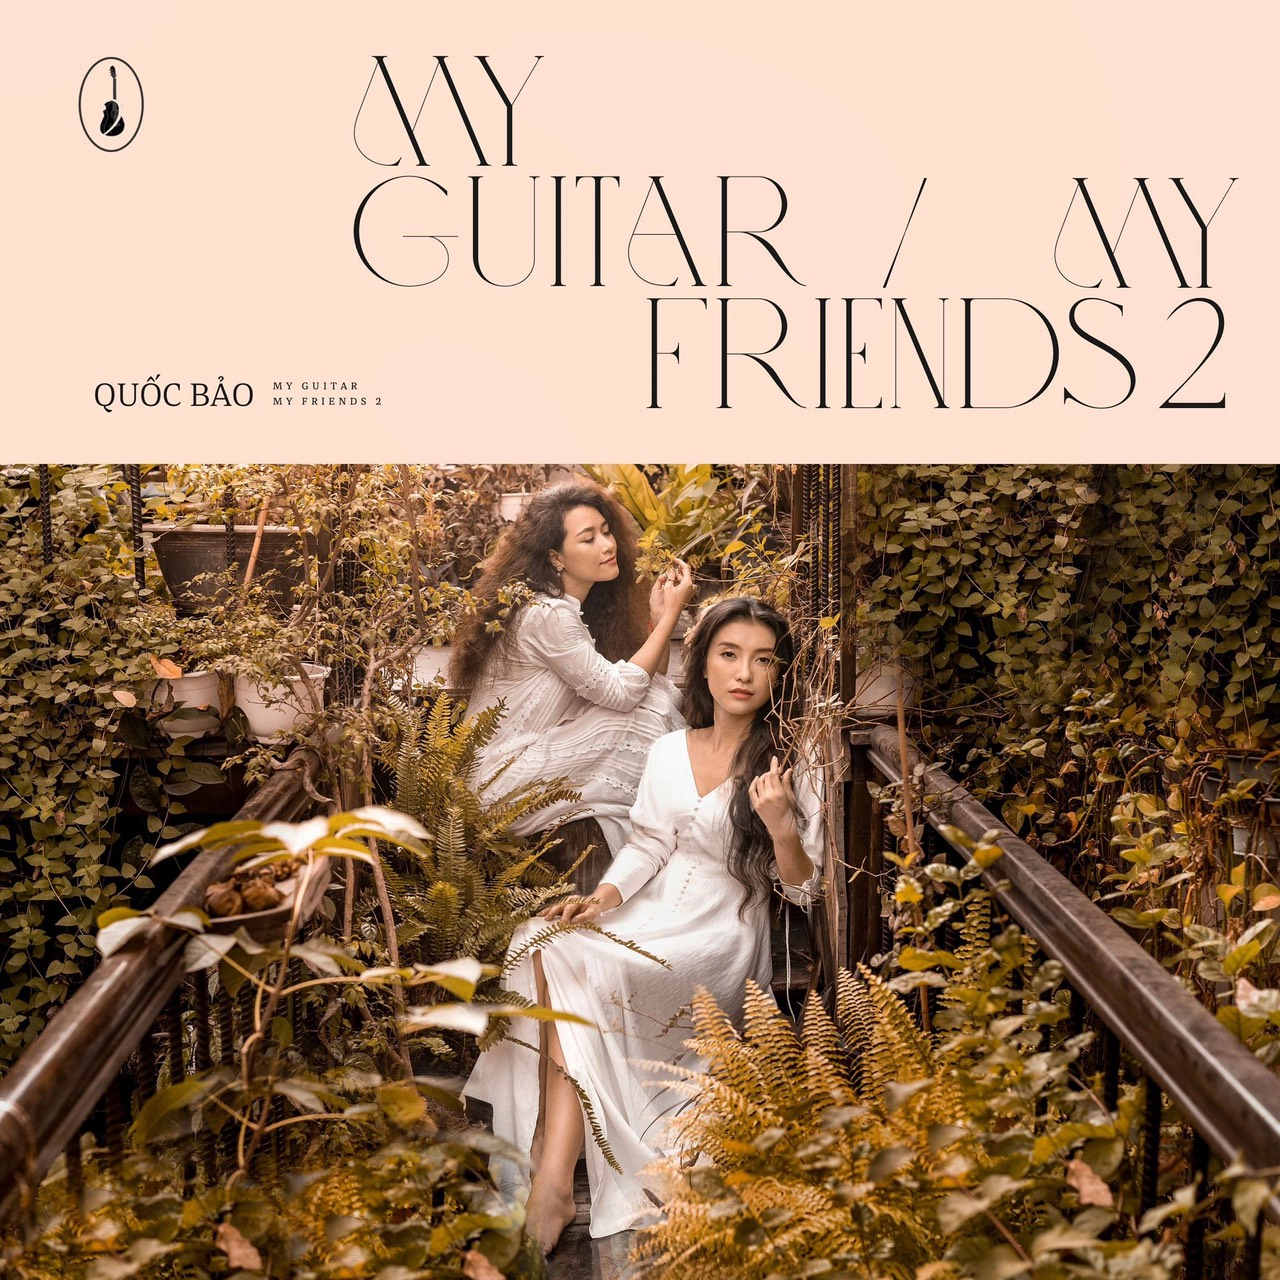 dia-than-quoc-bao-my-guitar-my-friends-2-limited-vinyl-lp